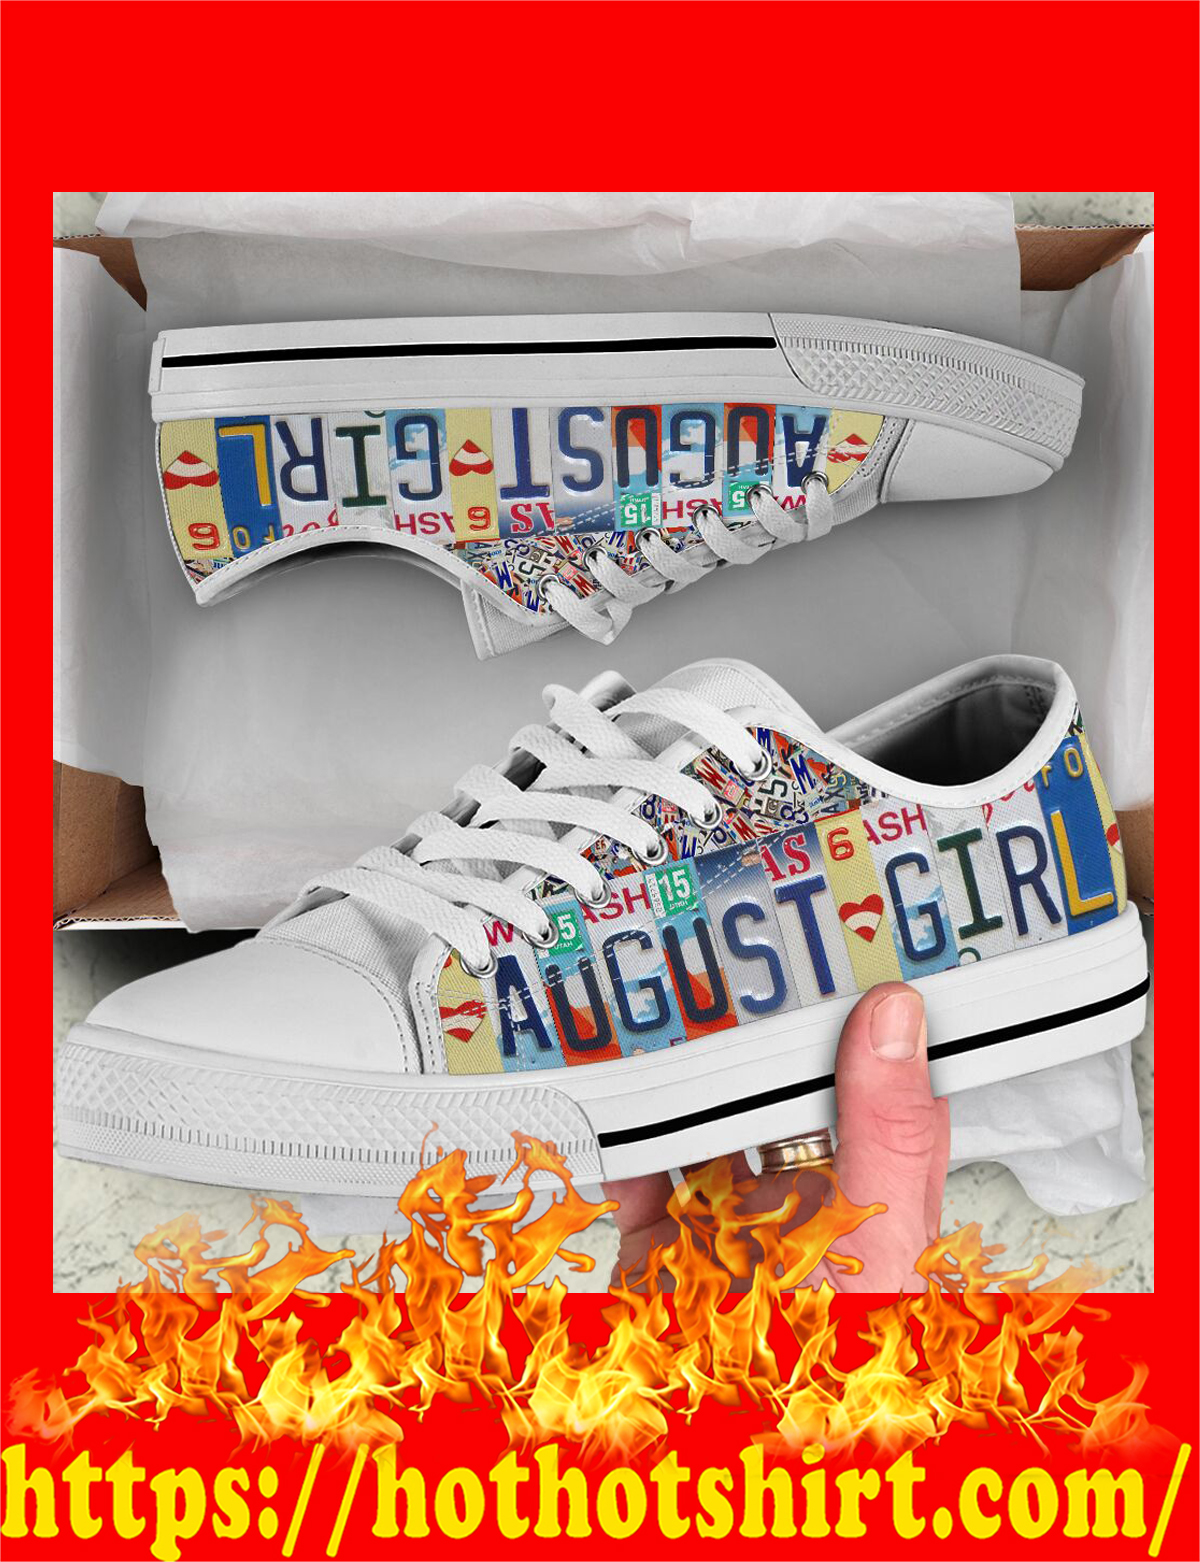 August girl low top shoes - pic 3